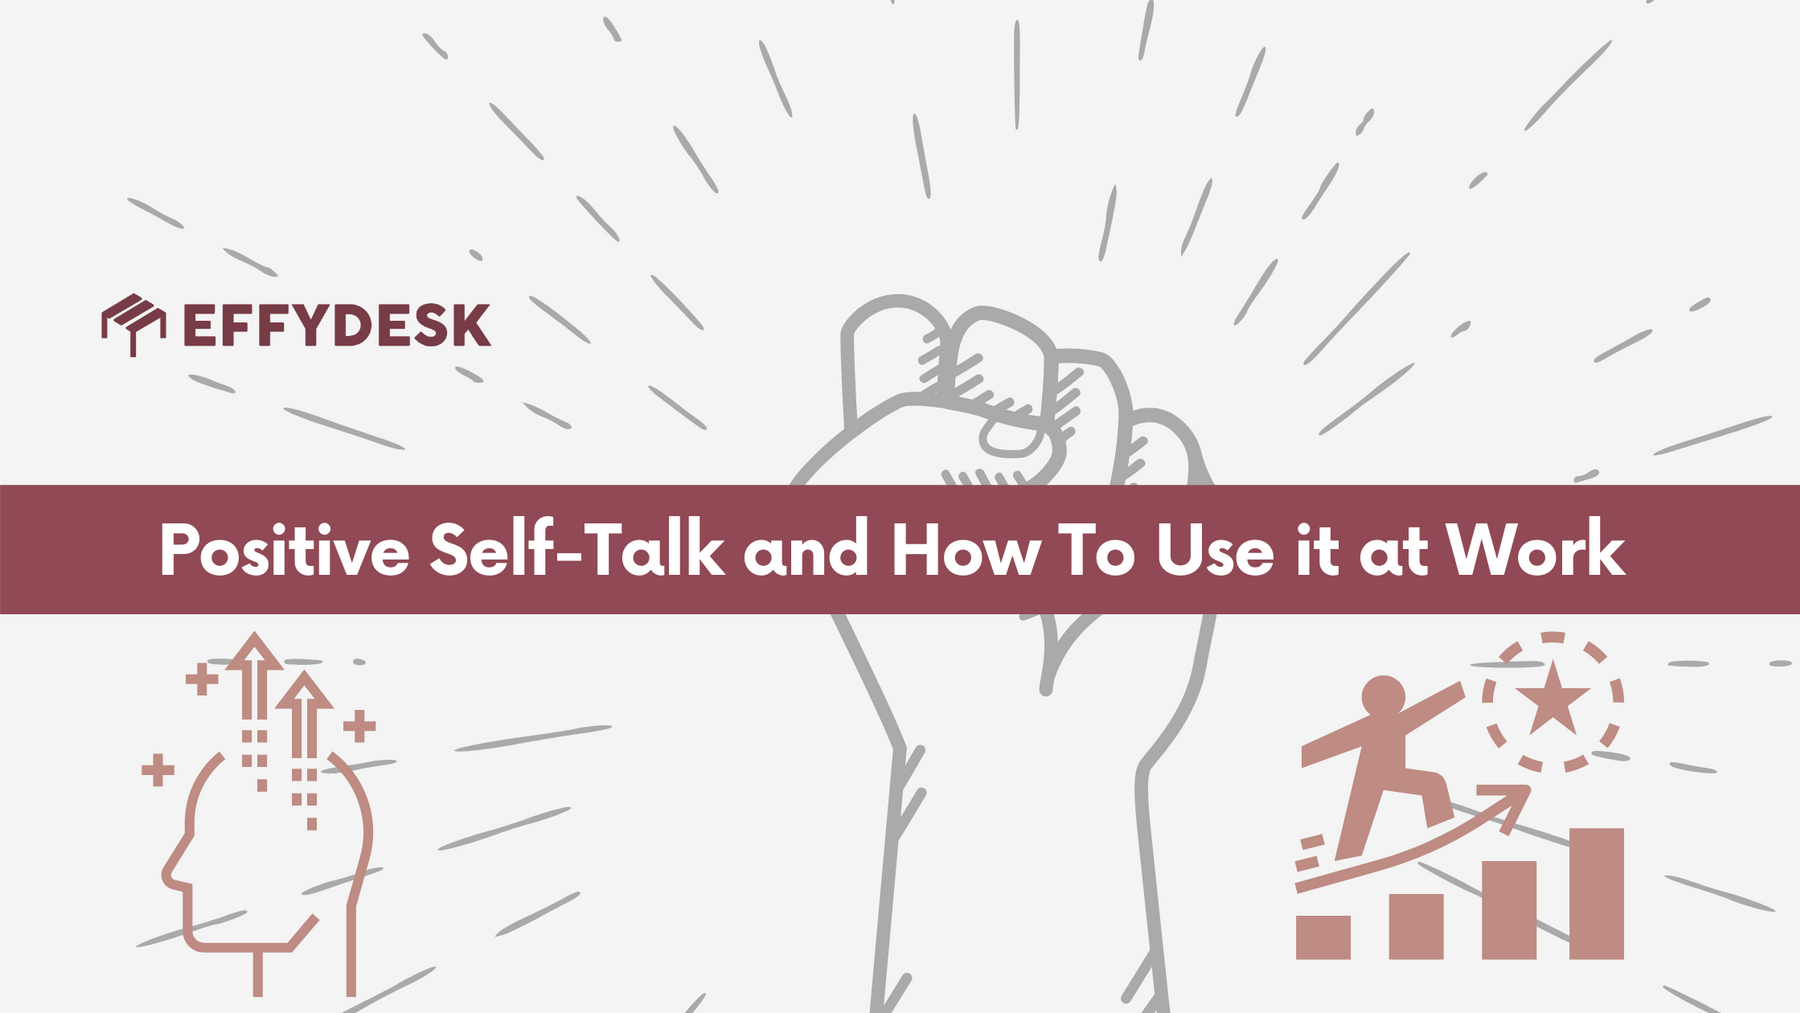 Learn how to positive self-talk and how to use it at work